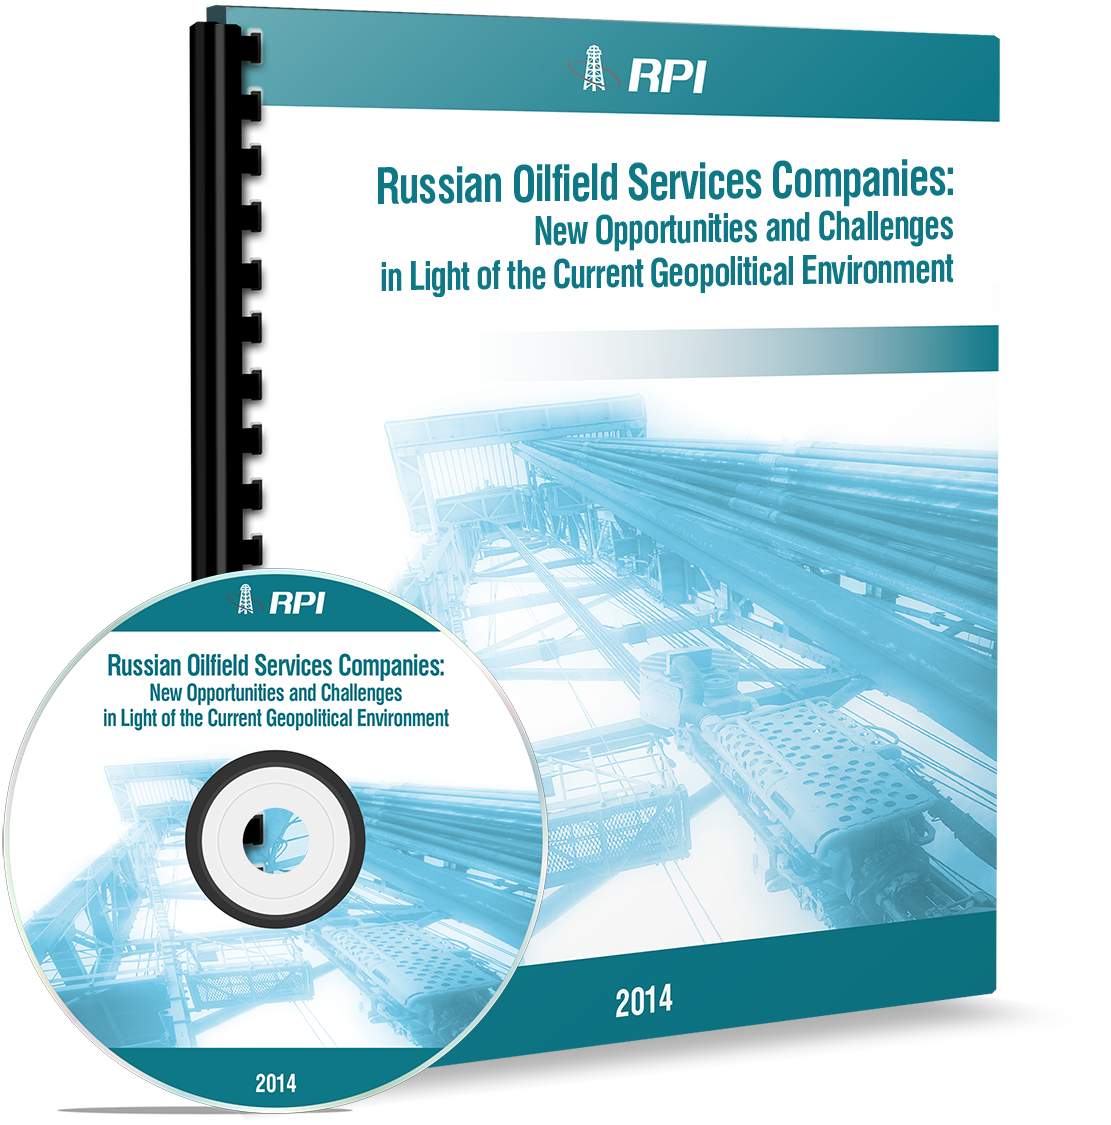 Russian Oilfield Services Companies: New Opportunities and